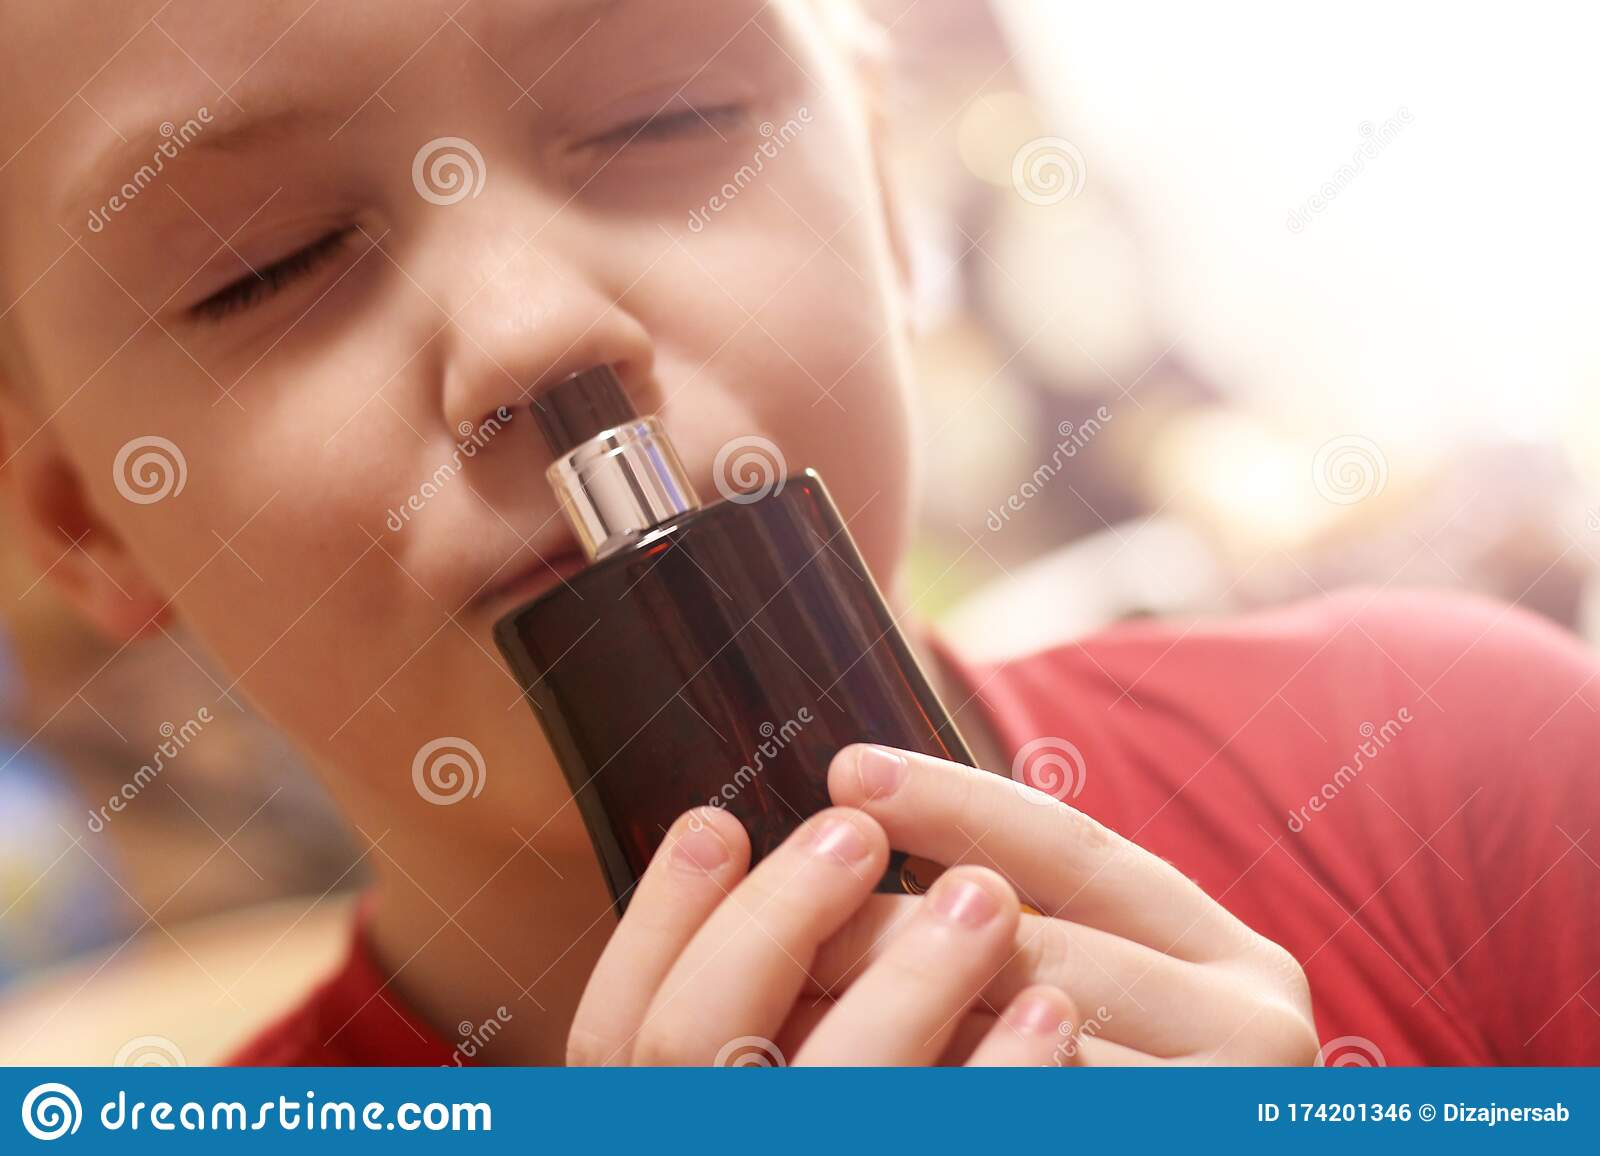 Child Smell Mother S Perfume So Close Stock Photo Image Of Caucasian Carefree 174201346